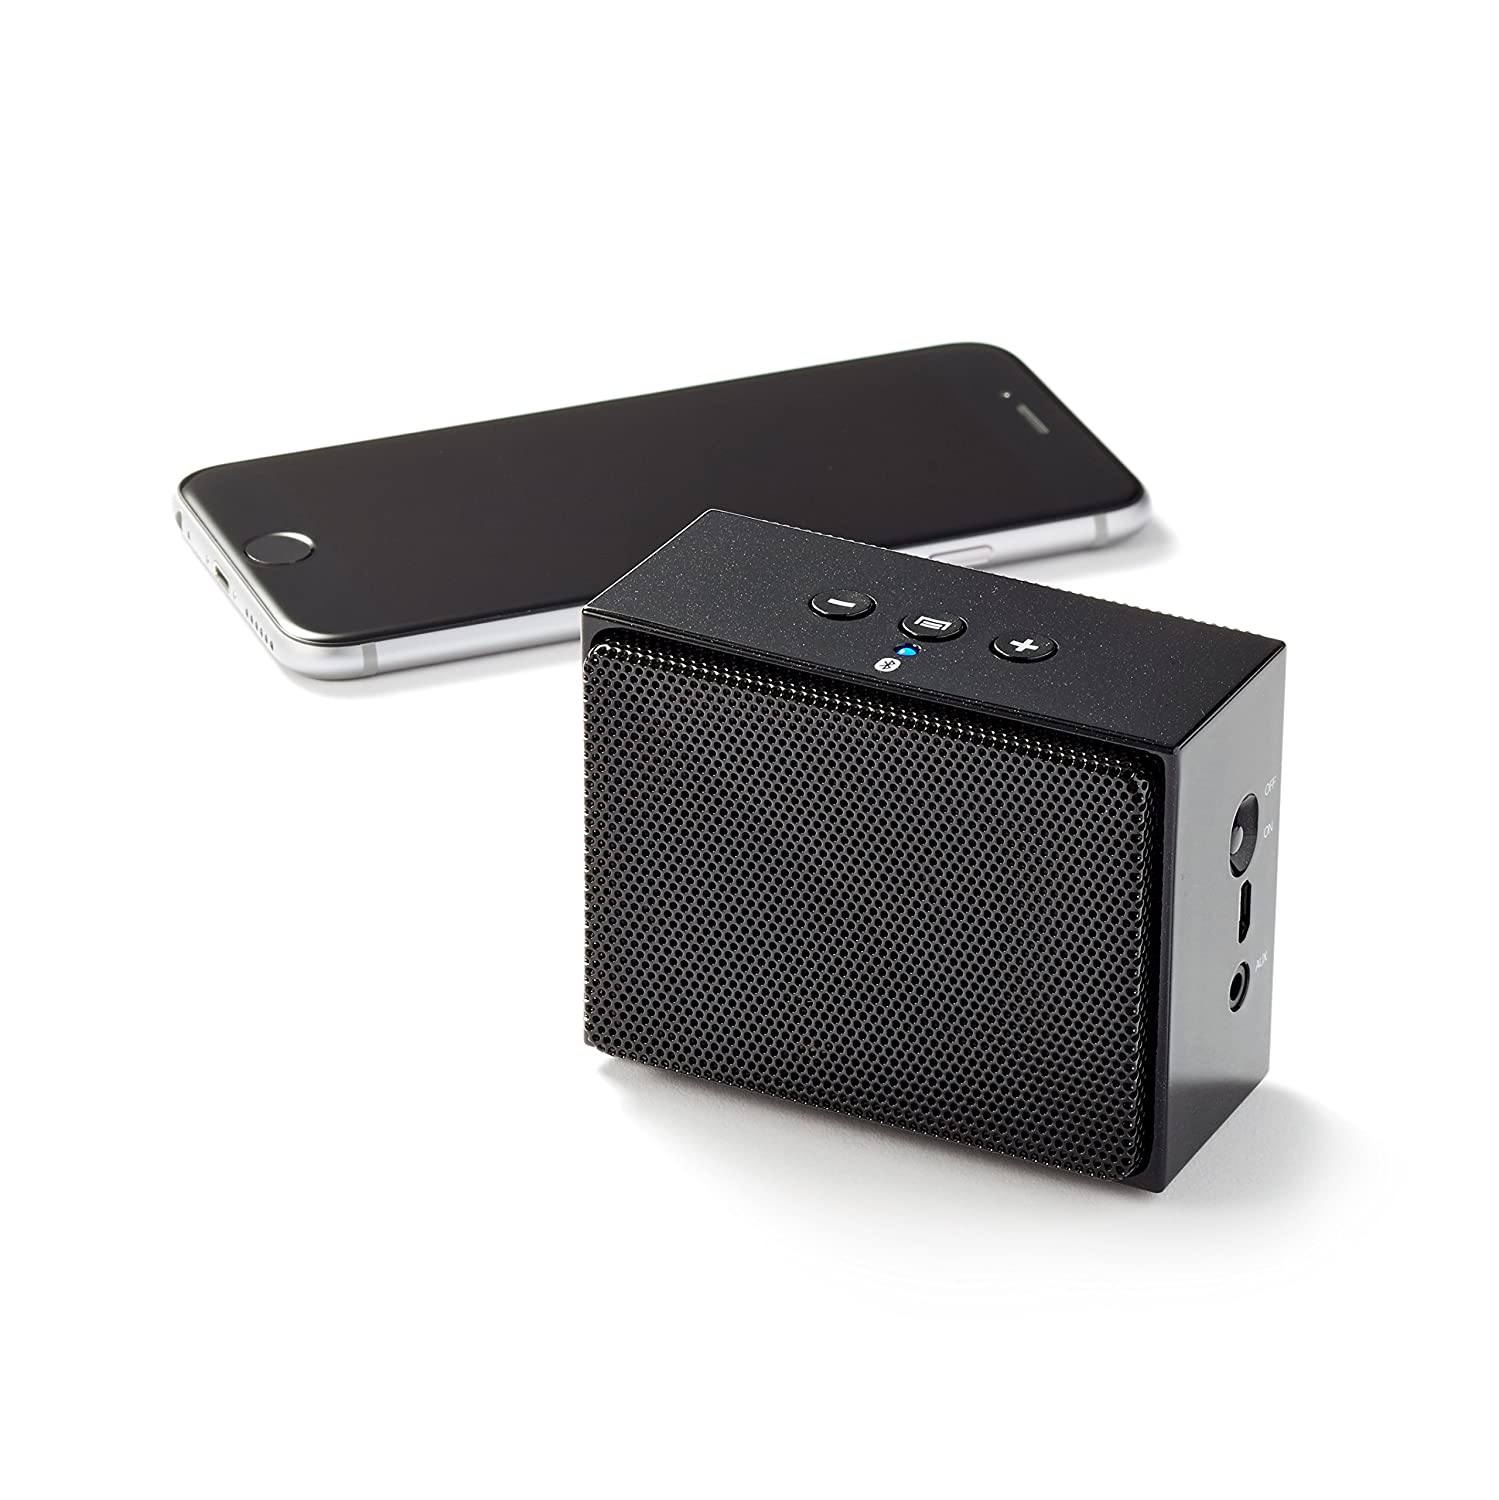 AmazonBasics Mini Bluetooth Speaker - Black Price: Buy